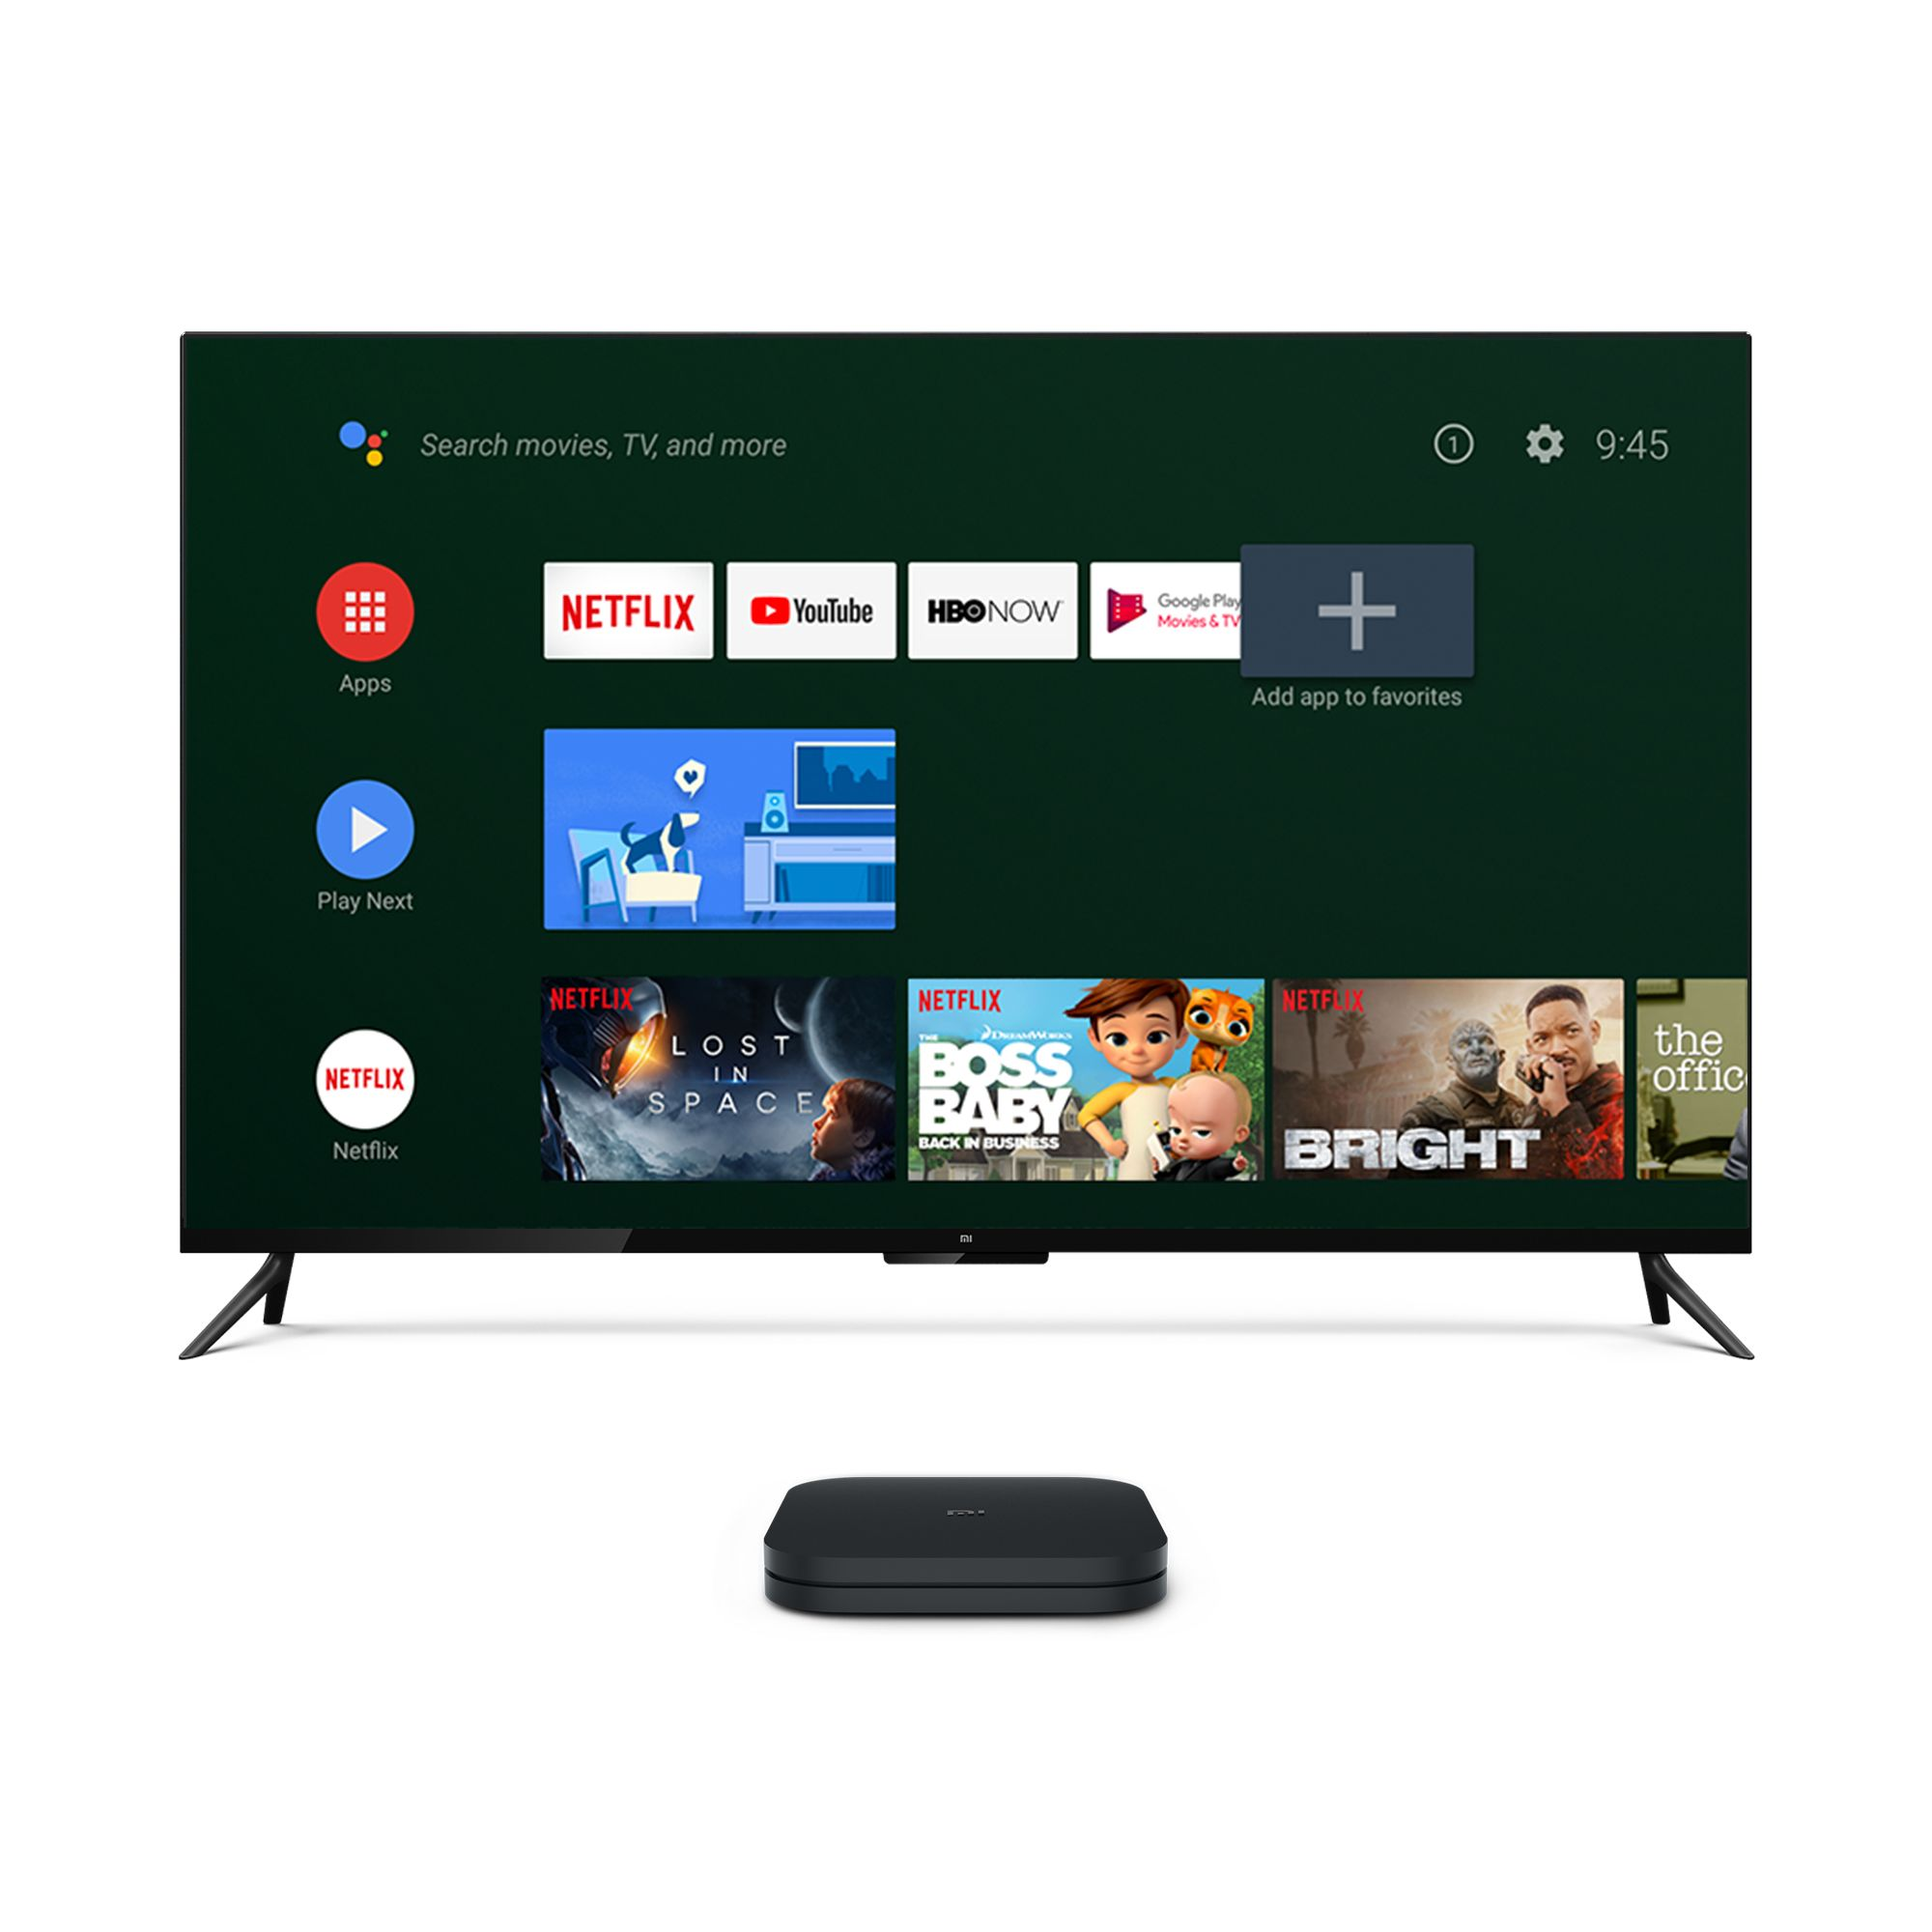 New Xiaomi Mi Box S Features Google Assistant, Android Oreo & Low